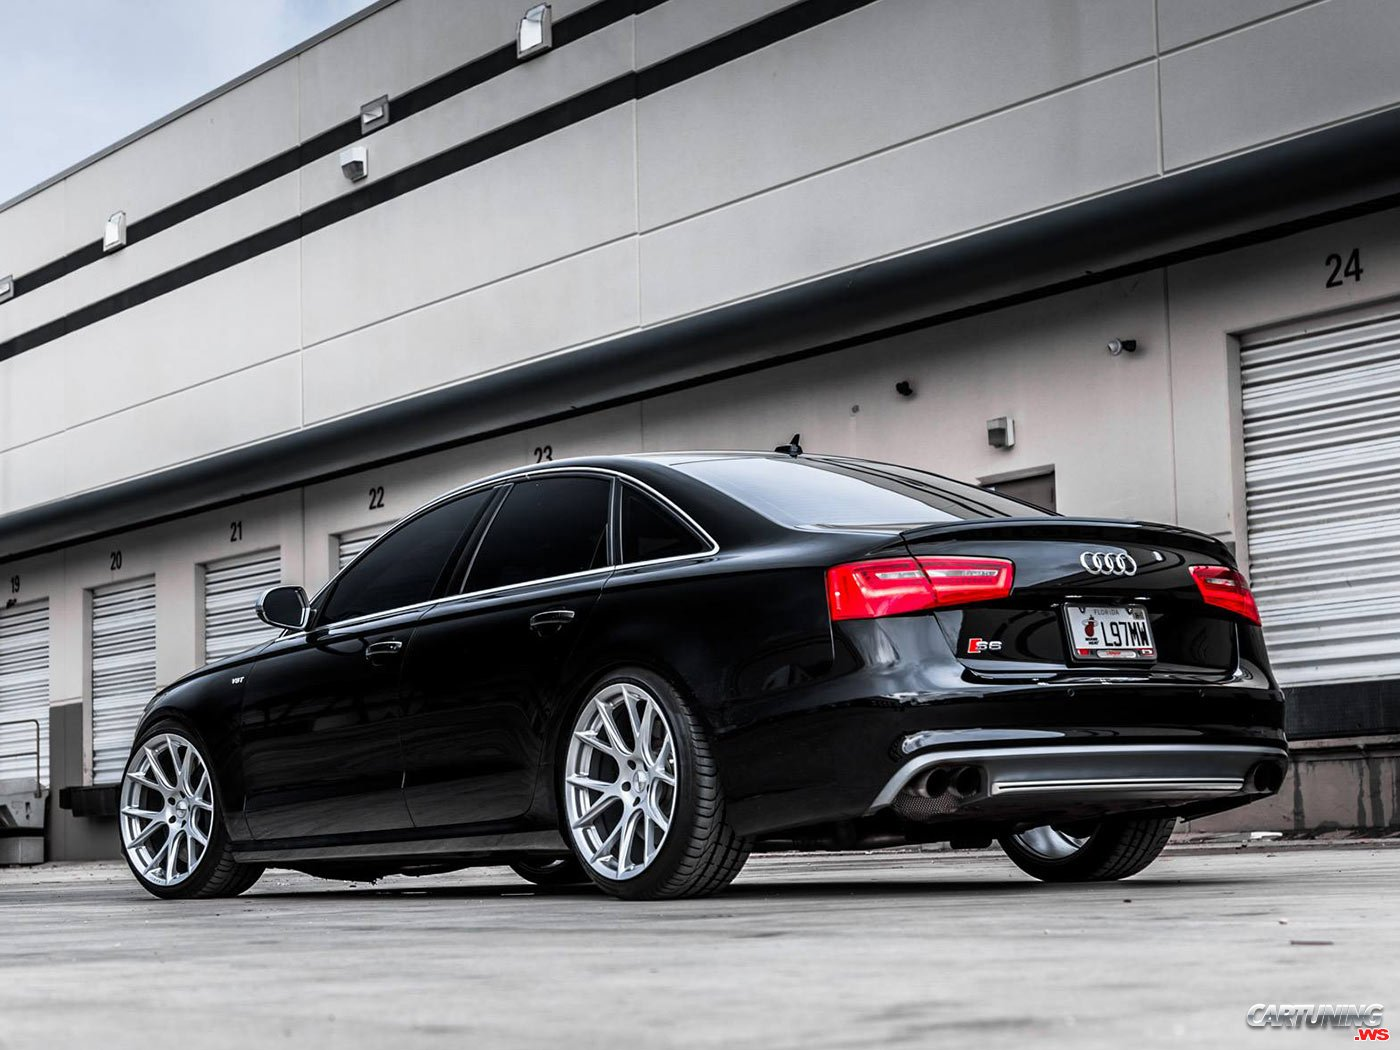 Audi A6 C7 Tuning Car View Specs